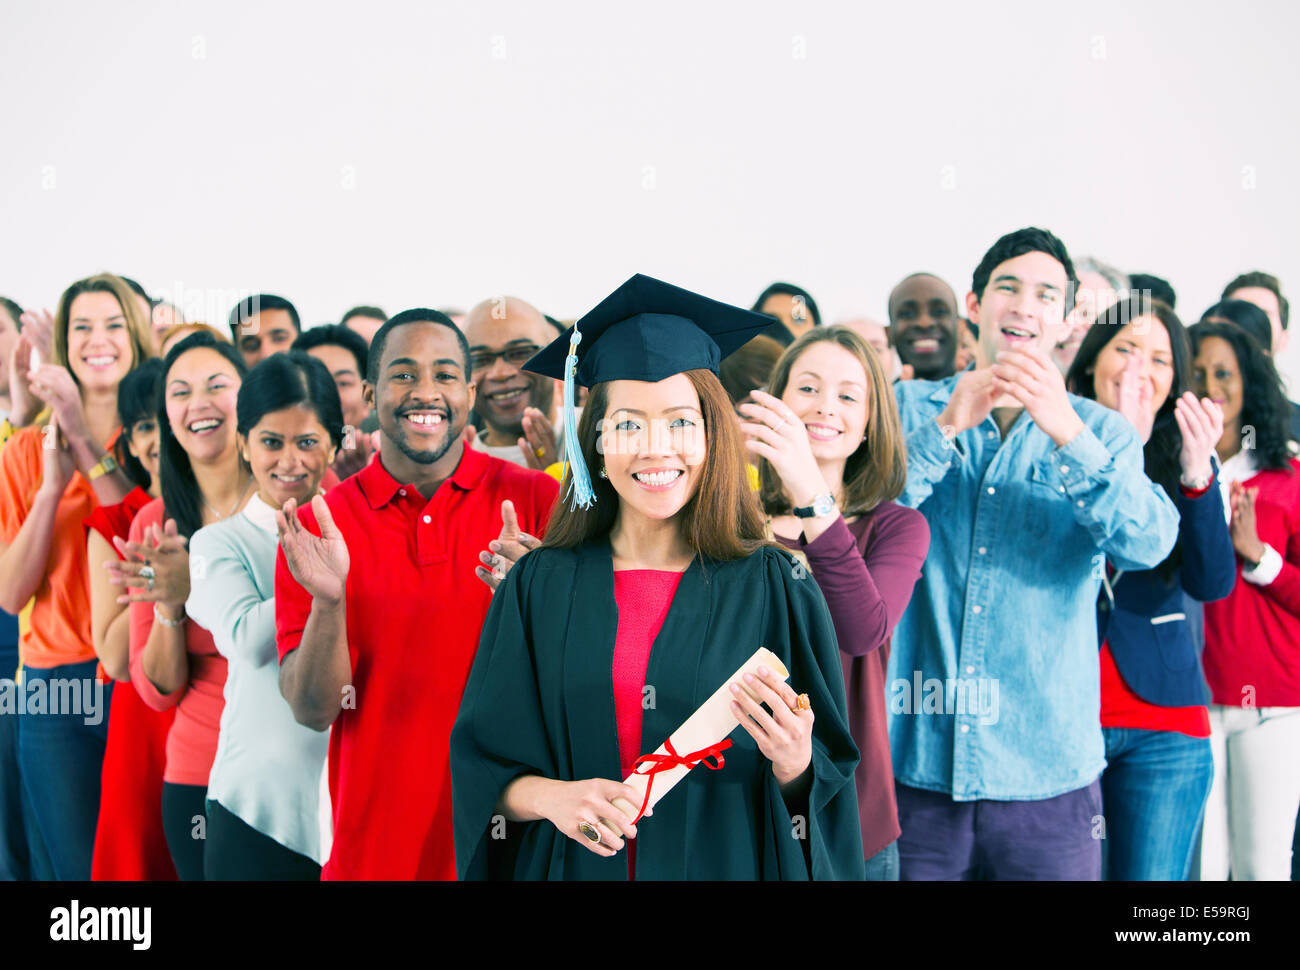 Crowd clapping behind happy graduate - Stock Image